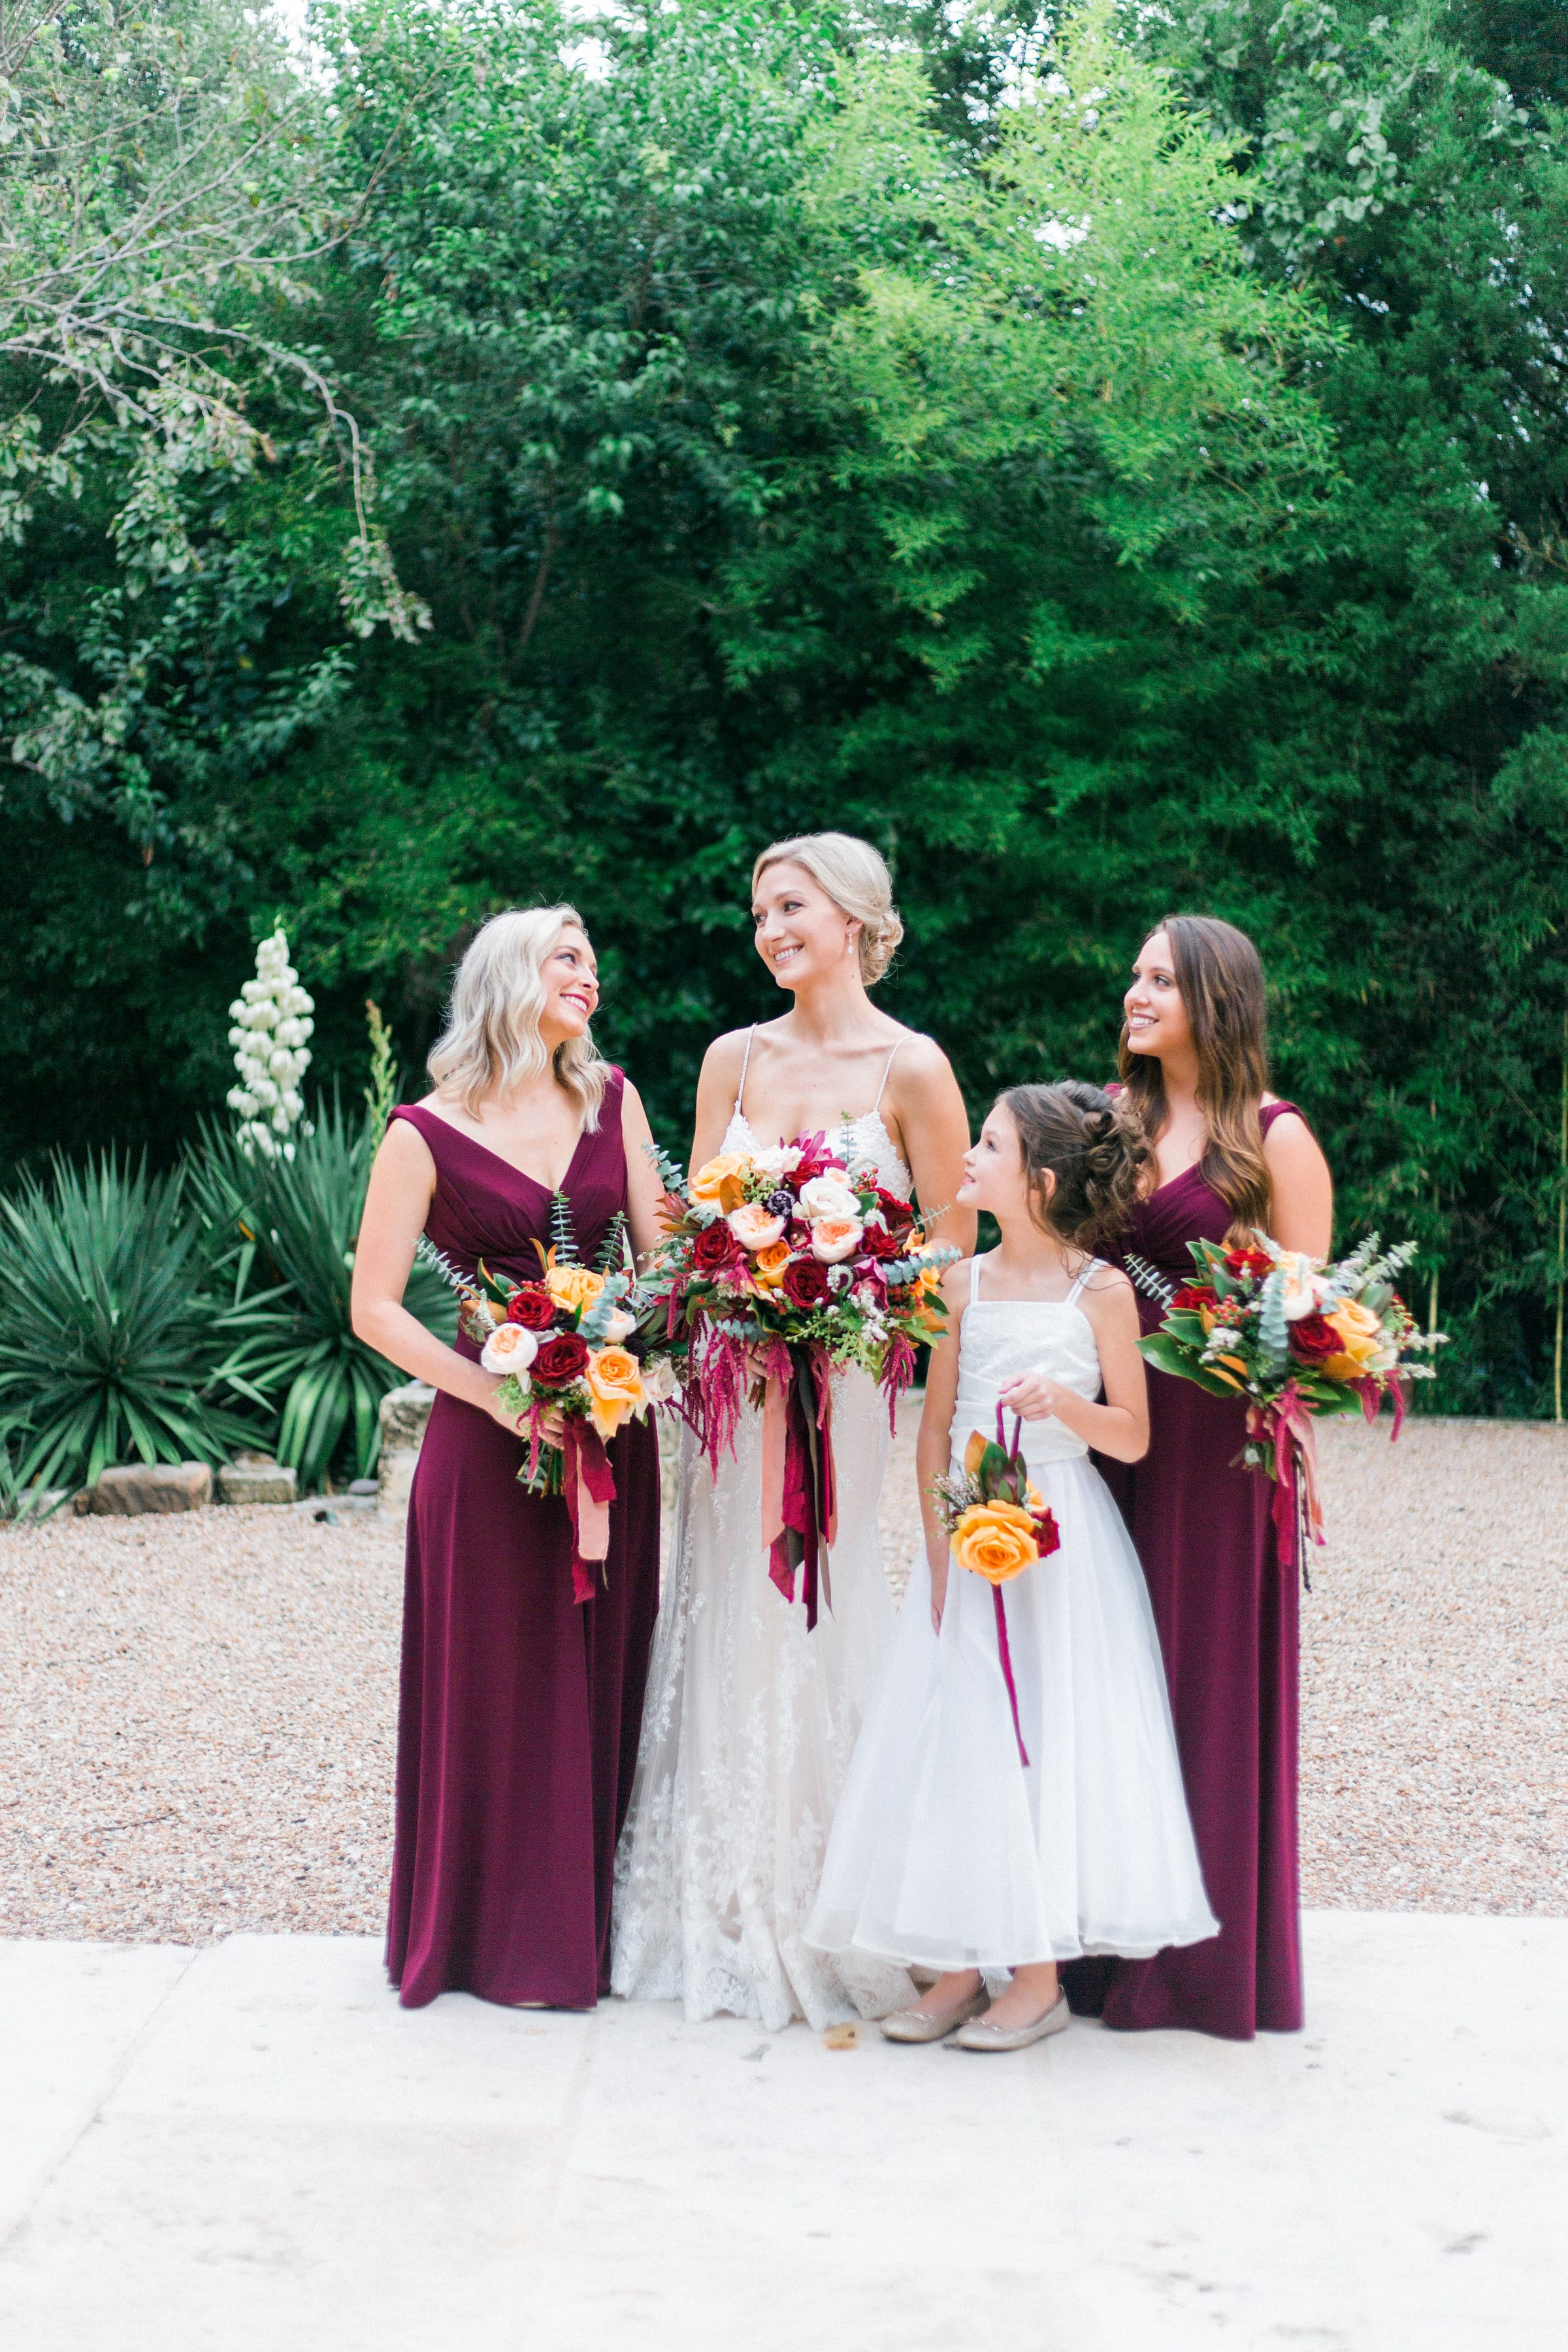 Gorgeous Outdoor Wedding Featuring Jewel Tones and Shimmery Lace Gown. Sarah wore the Nola wedding dress by Maggie Sottero.